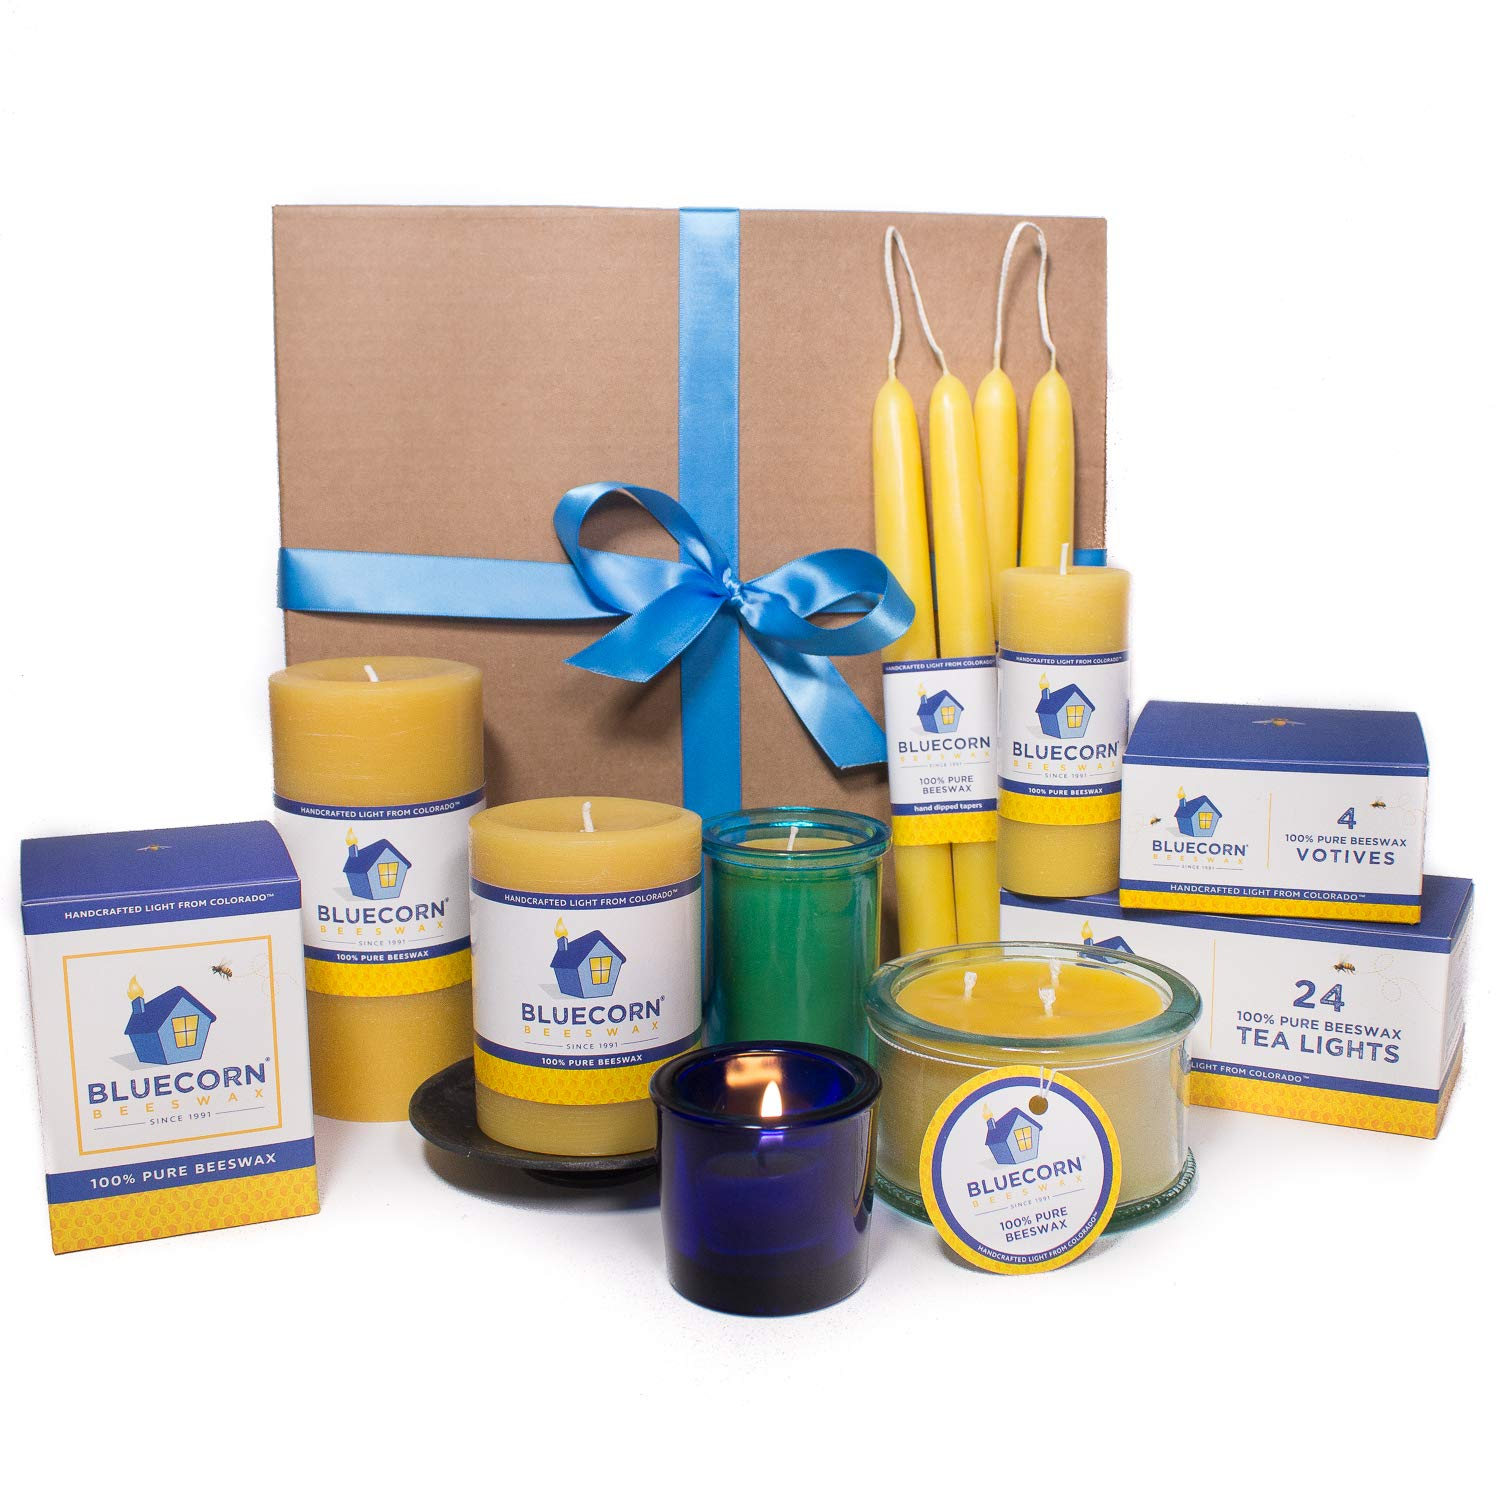 Bluecorn Beeswax Raw Beeswax Candle Gift Set (Large)